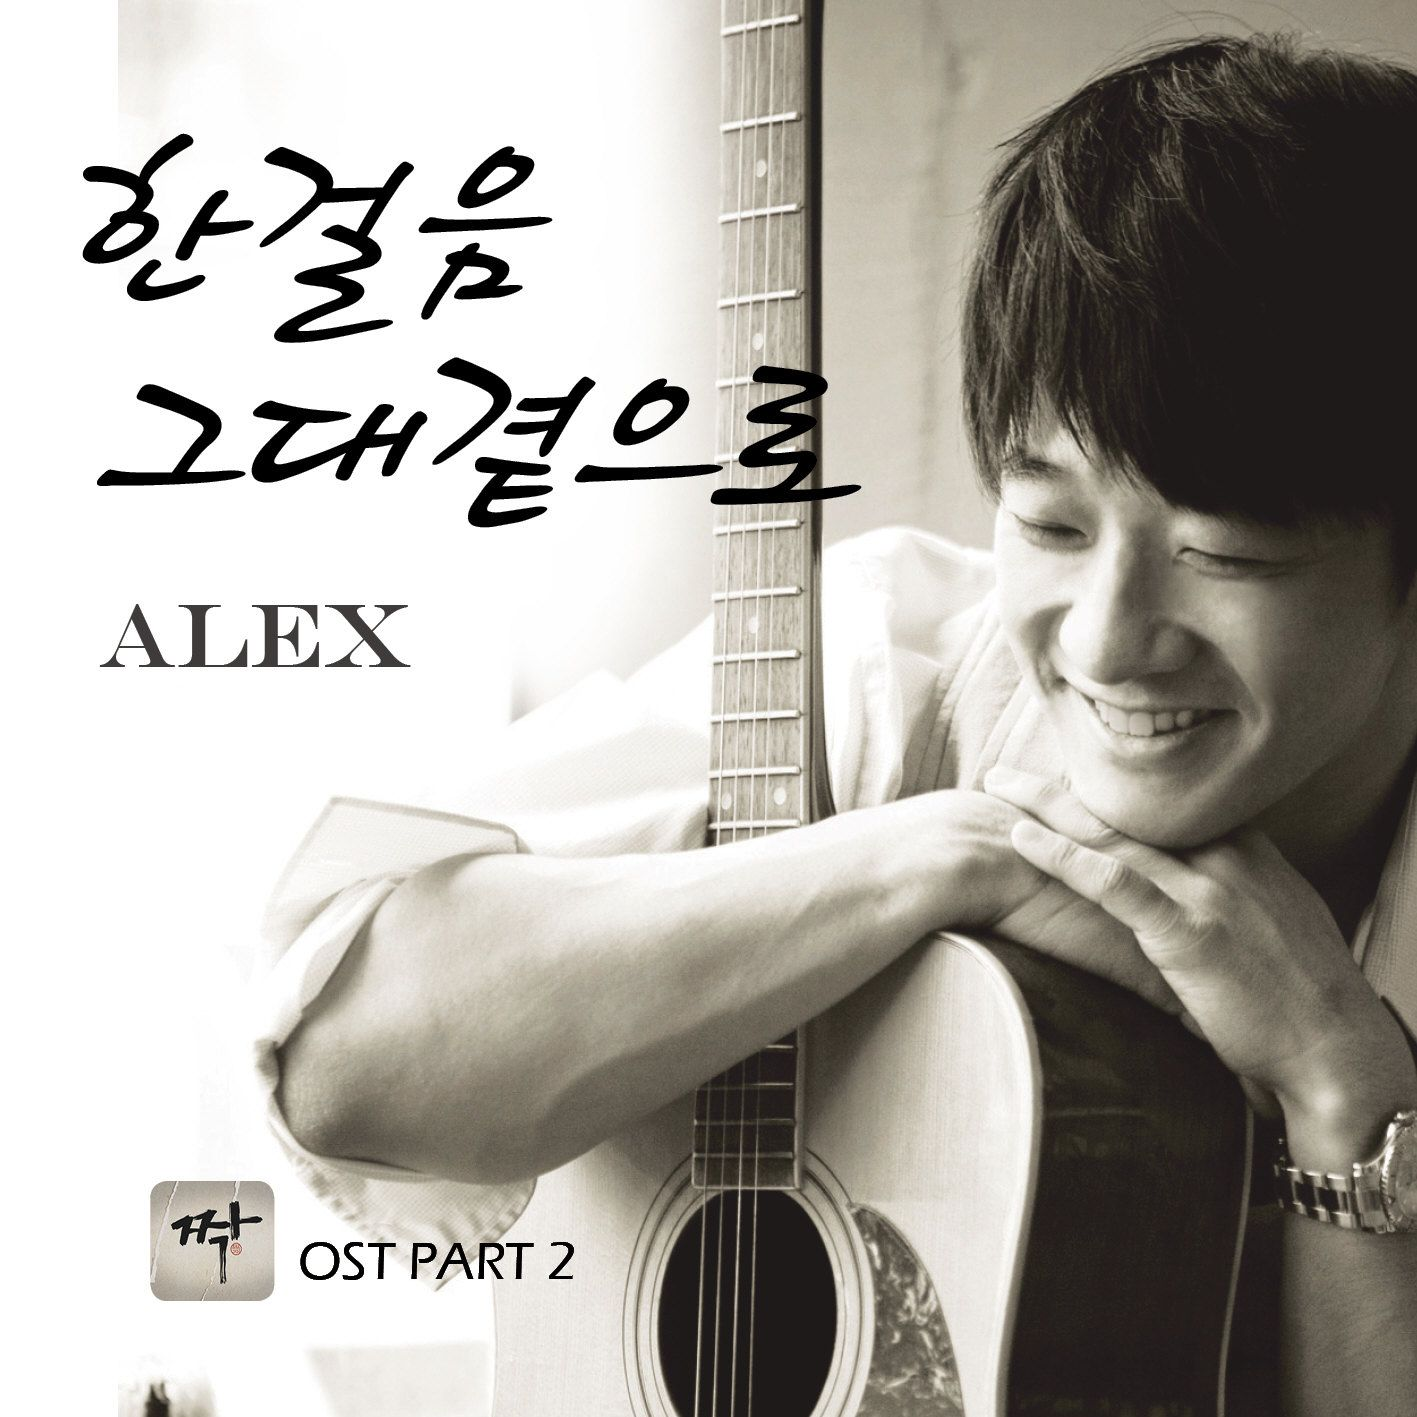 [Single] Alex - One Step To Your Side (Mate OST Part.2) (MP3)